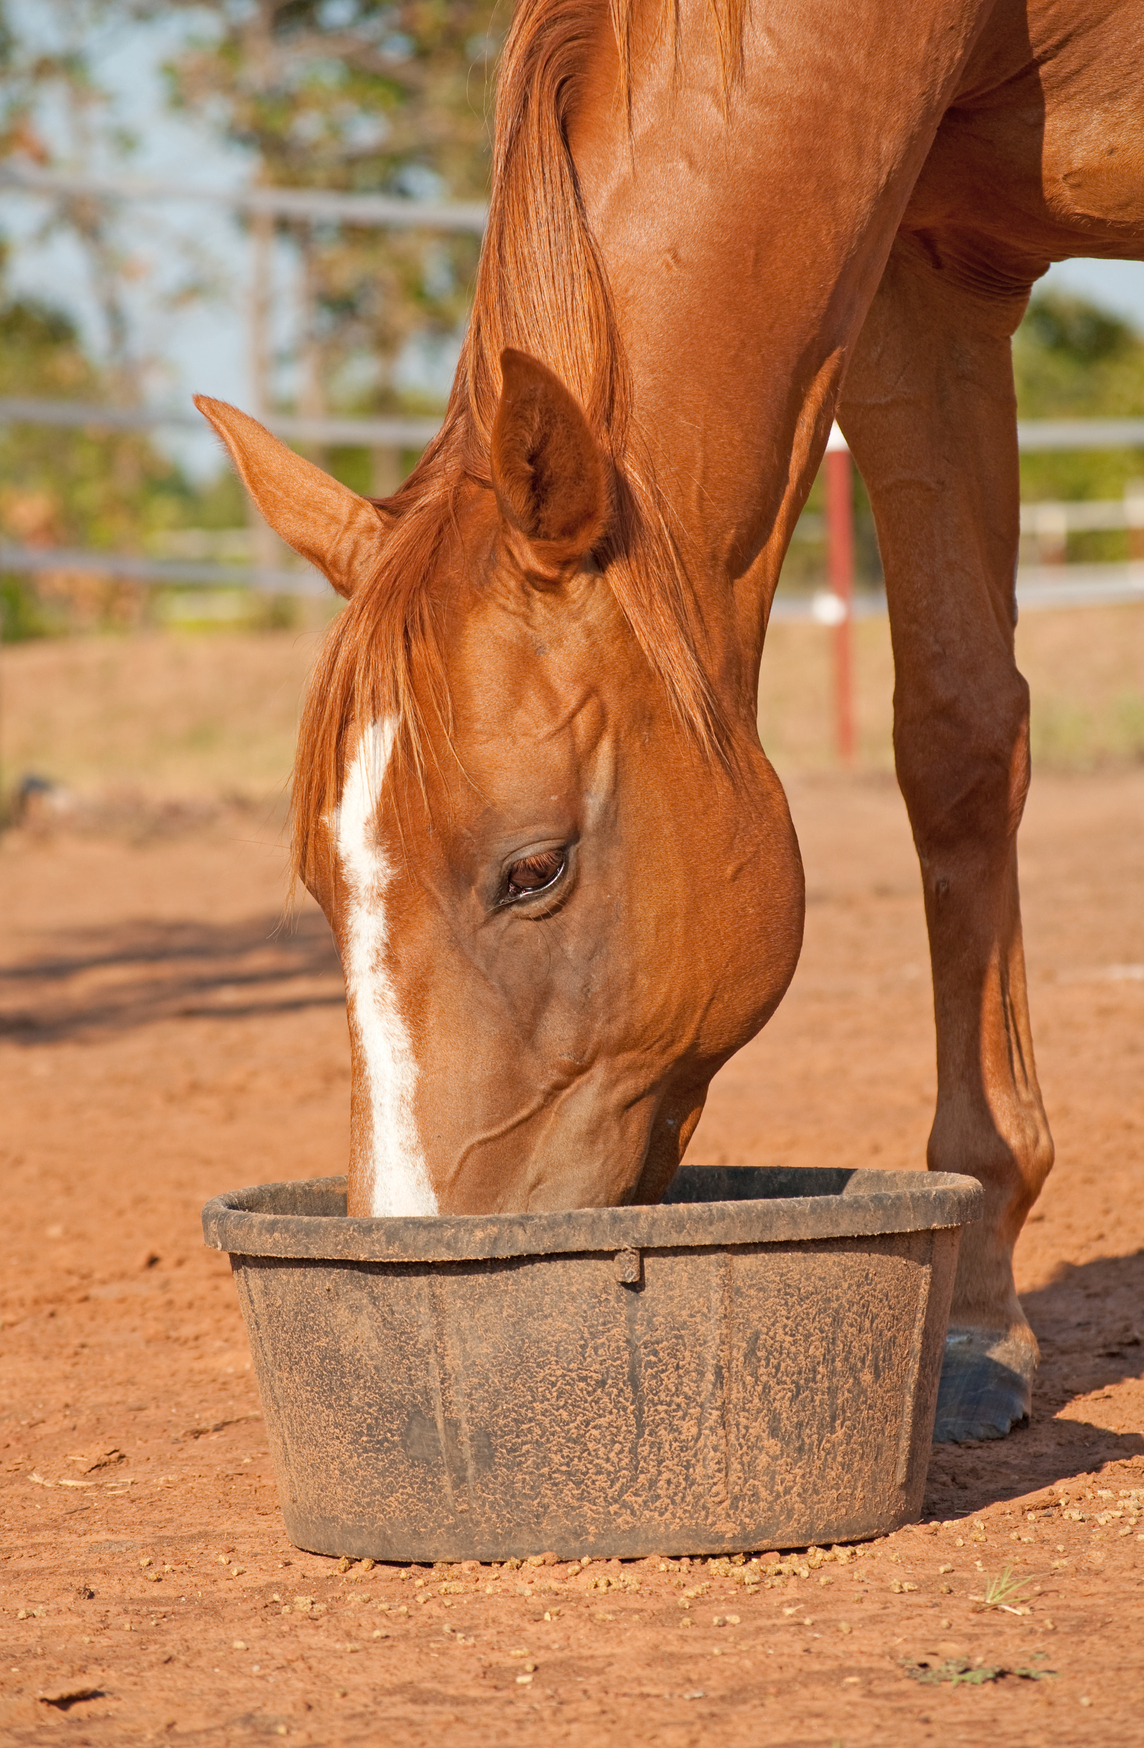 Chinese Herbs For Horses The Equine Nutrition Nerd